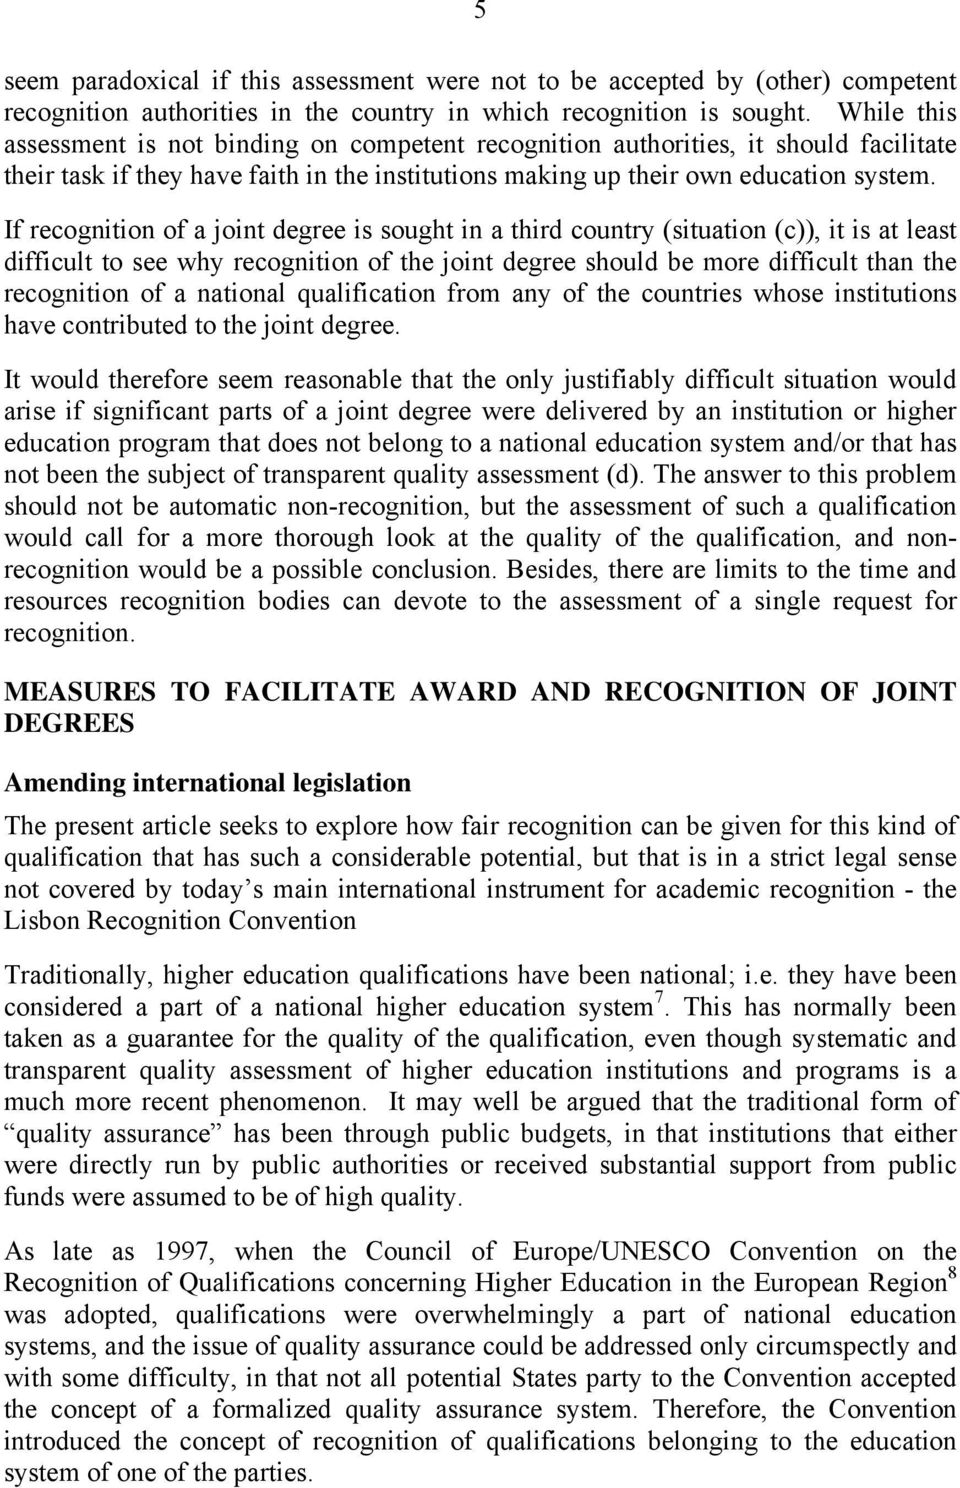 If recognition of a joint degree is sought in a third country (situation (c)), it is at least difficult to see why recognition of the joint degree should be more difficult than the recognition of a